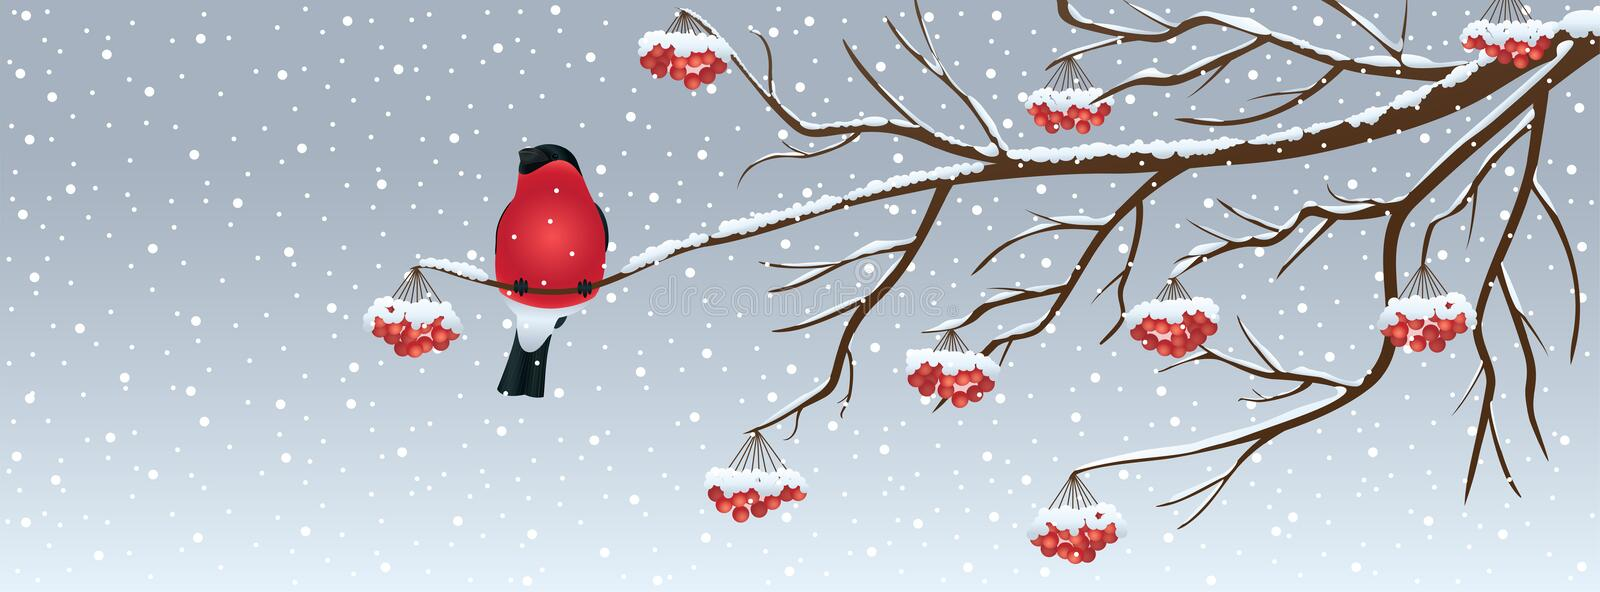 Christmas background with birdie royalty free stock images